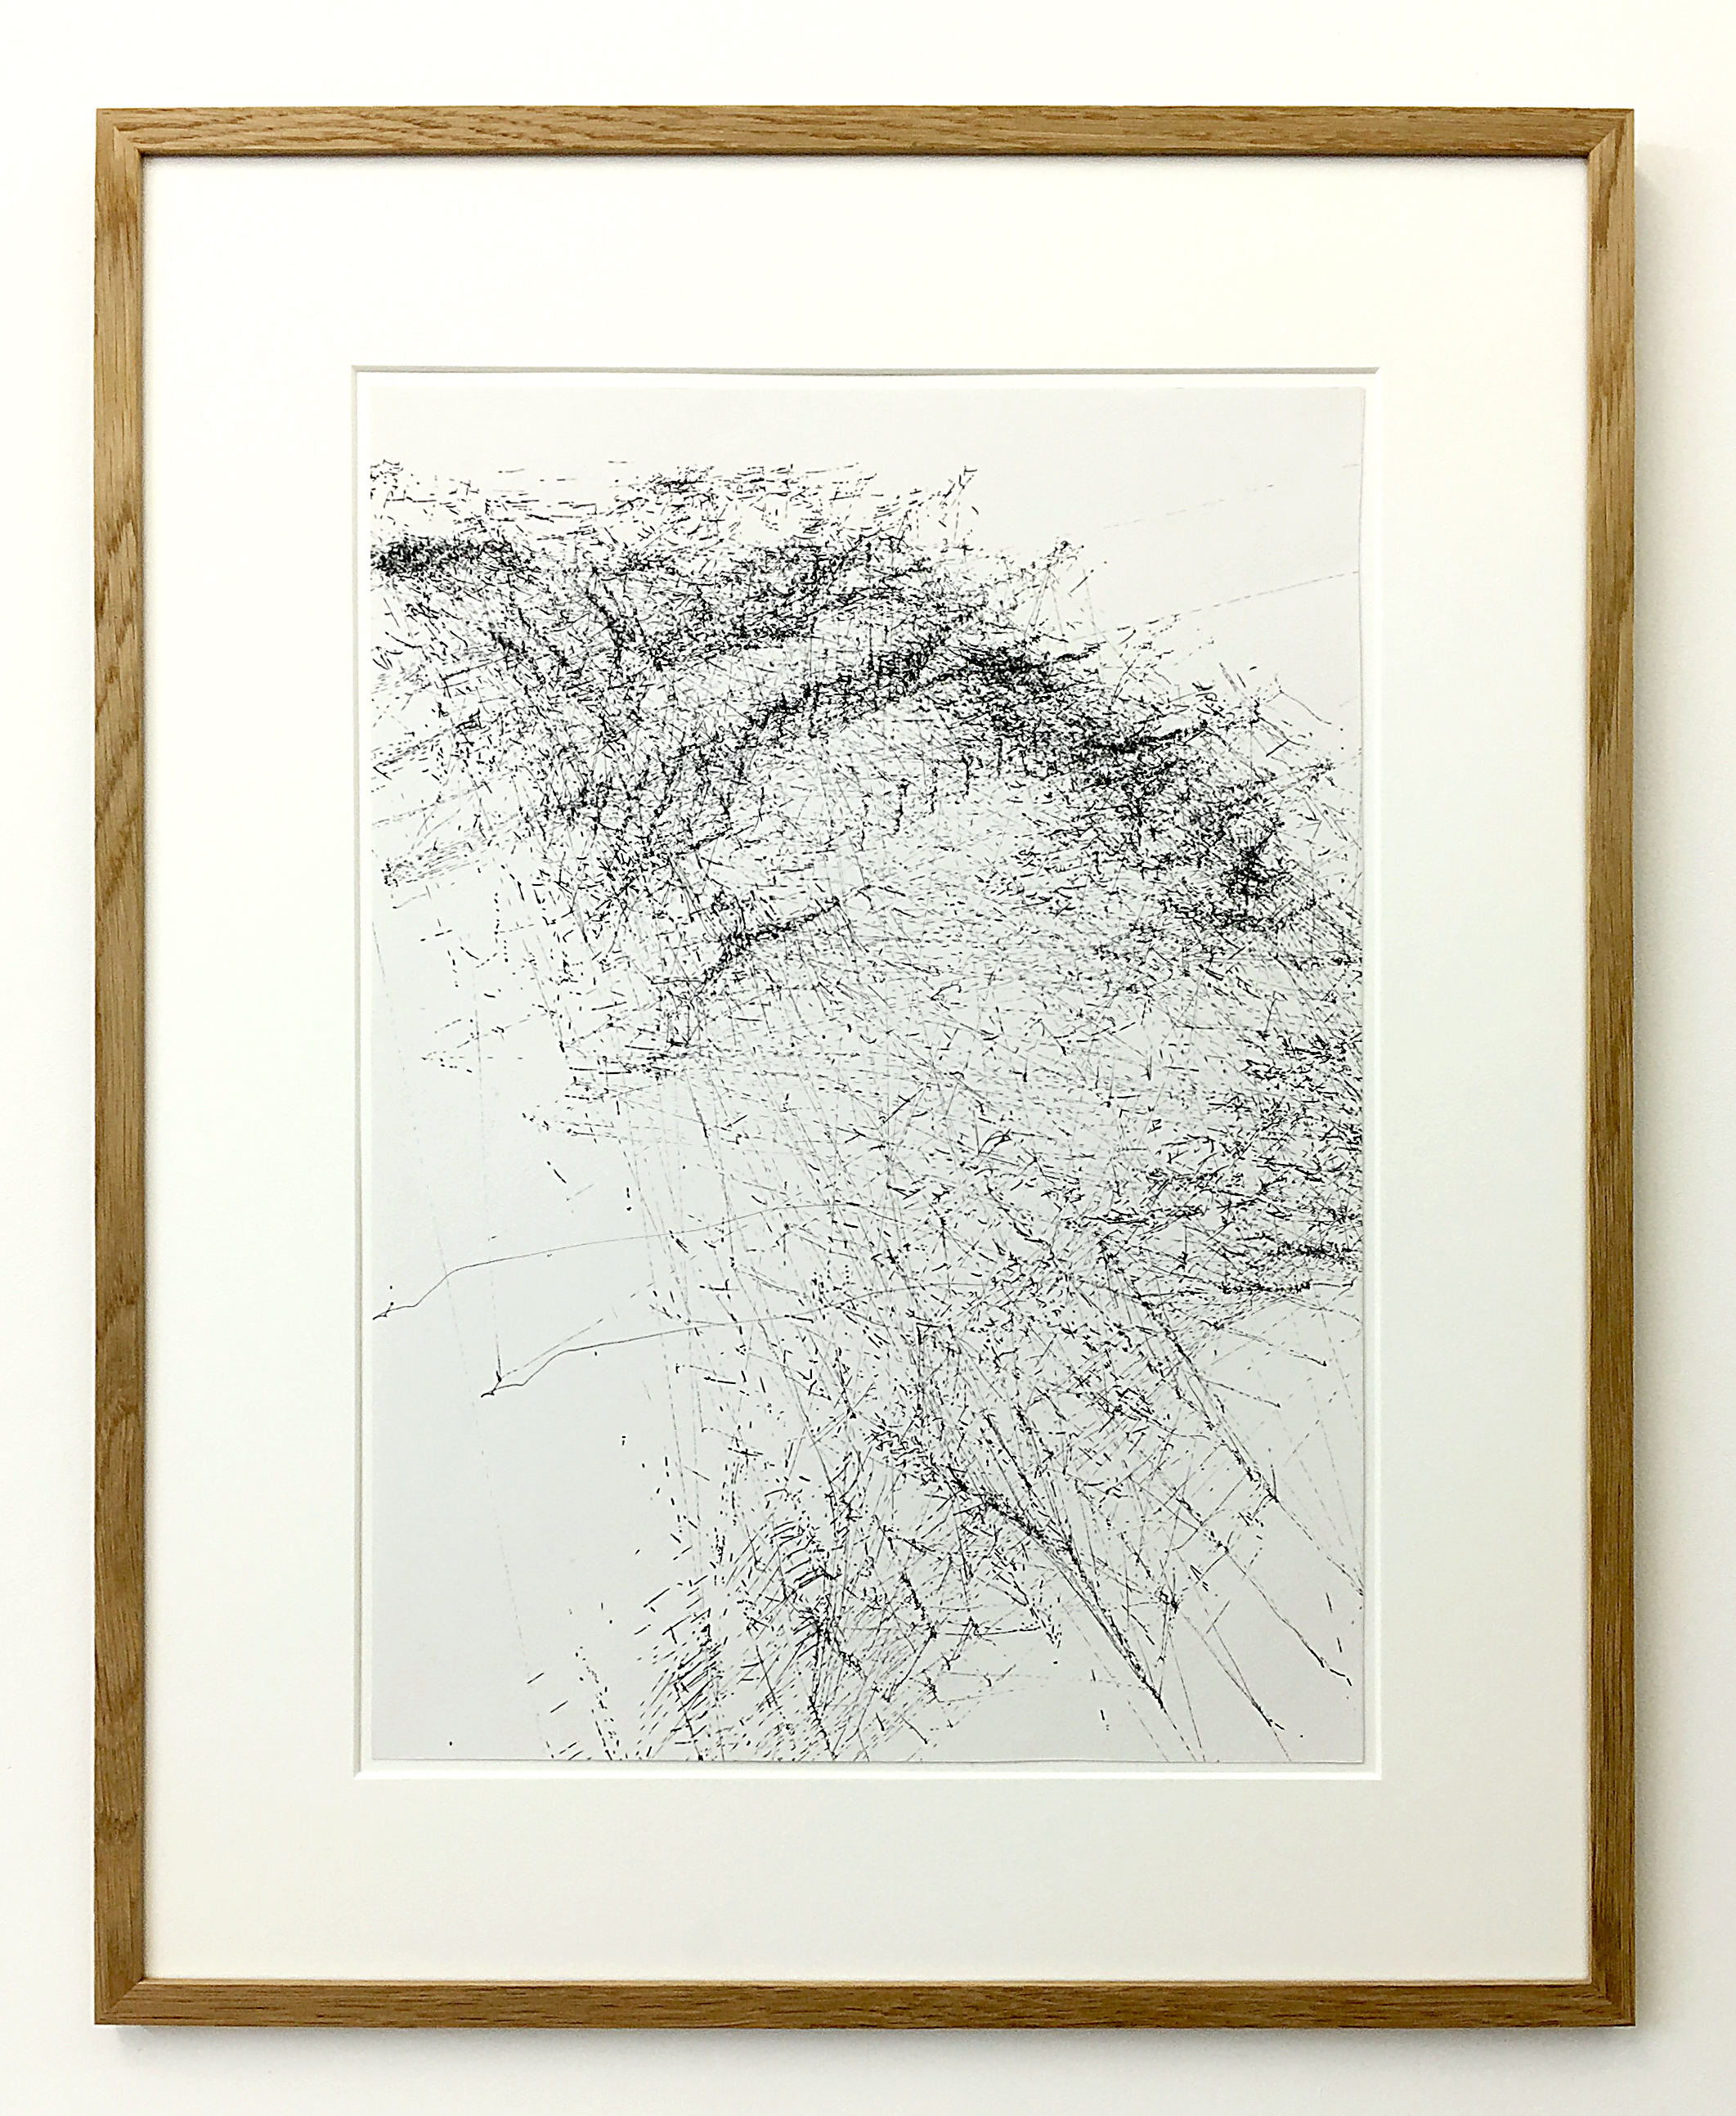 Freigeregelte apparative Zeichnungen (Untitled No.4) , 1990, magnetically manipulated plotter drawing / ink on paper, 58 x 45.5 cm